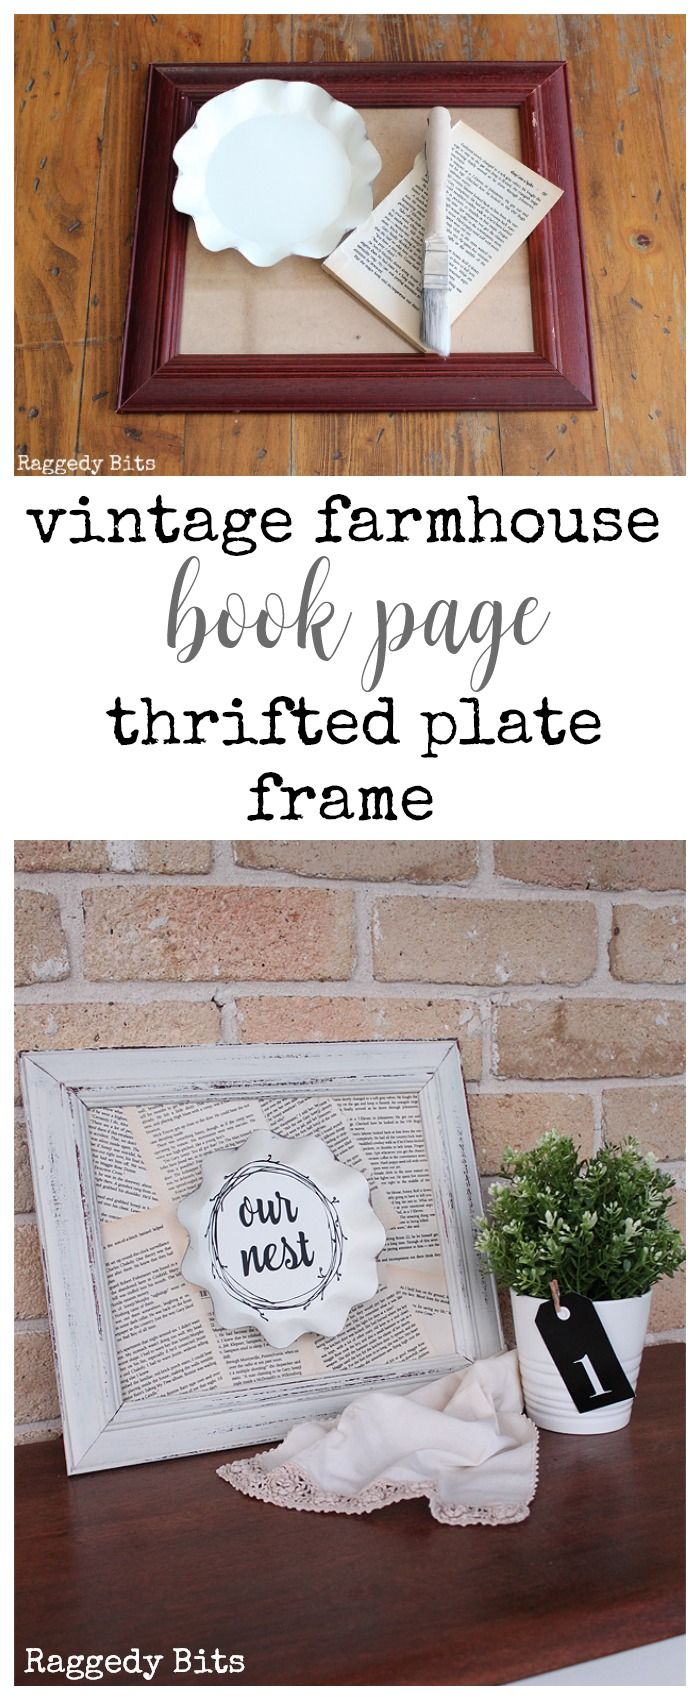 Vintage Farmhouse Book Page Thrifted Plate Frame   Crafts to Make ...